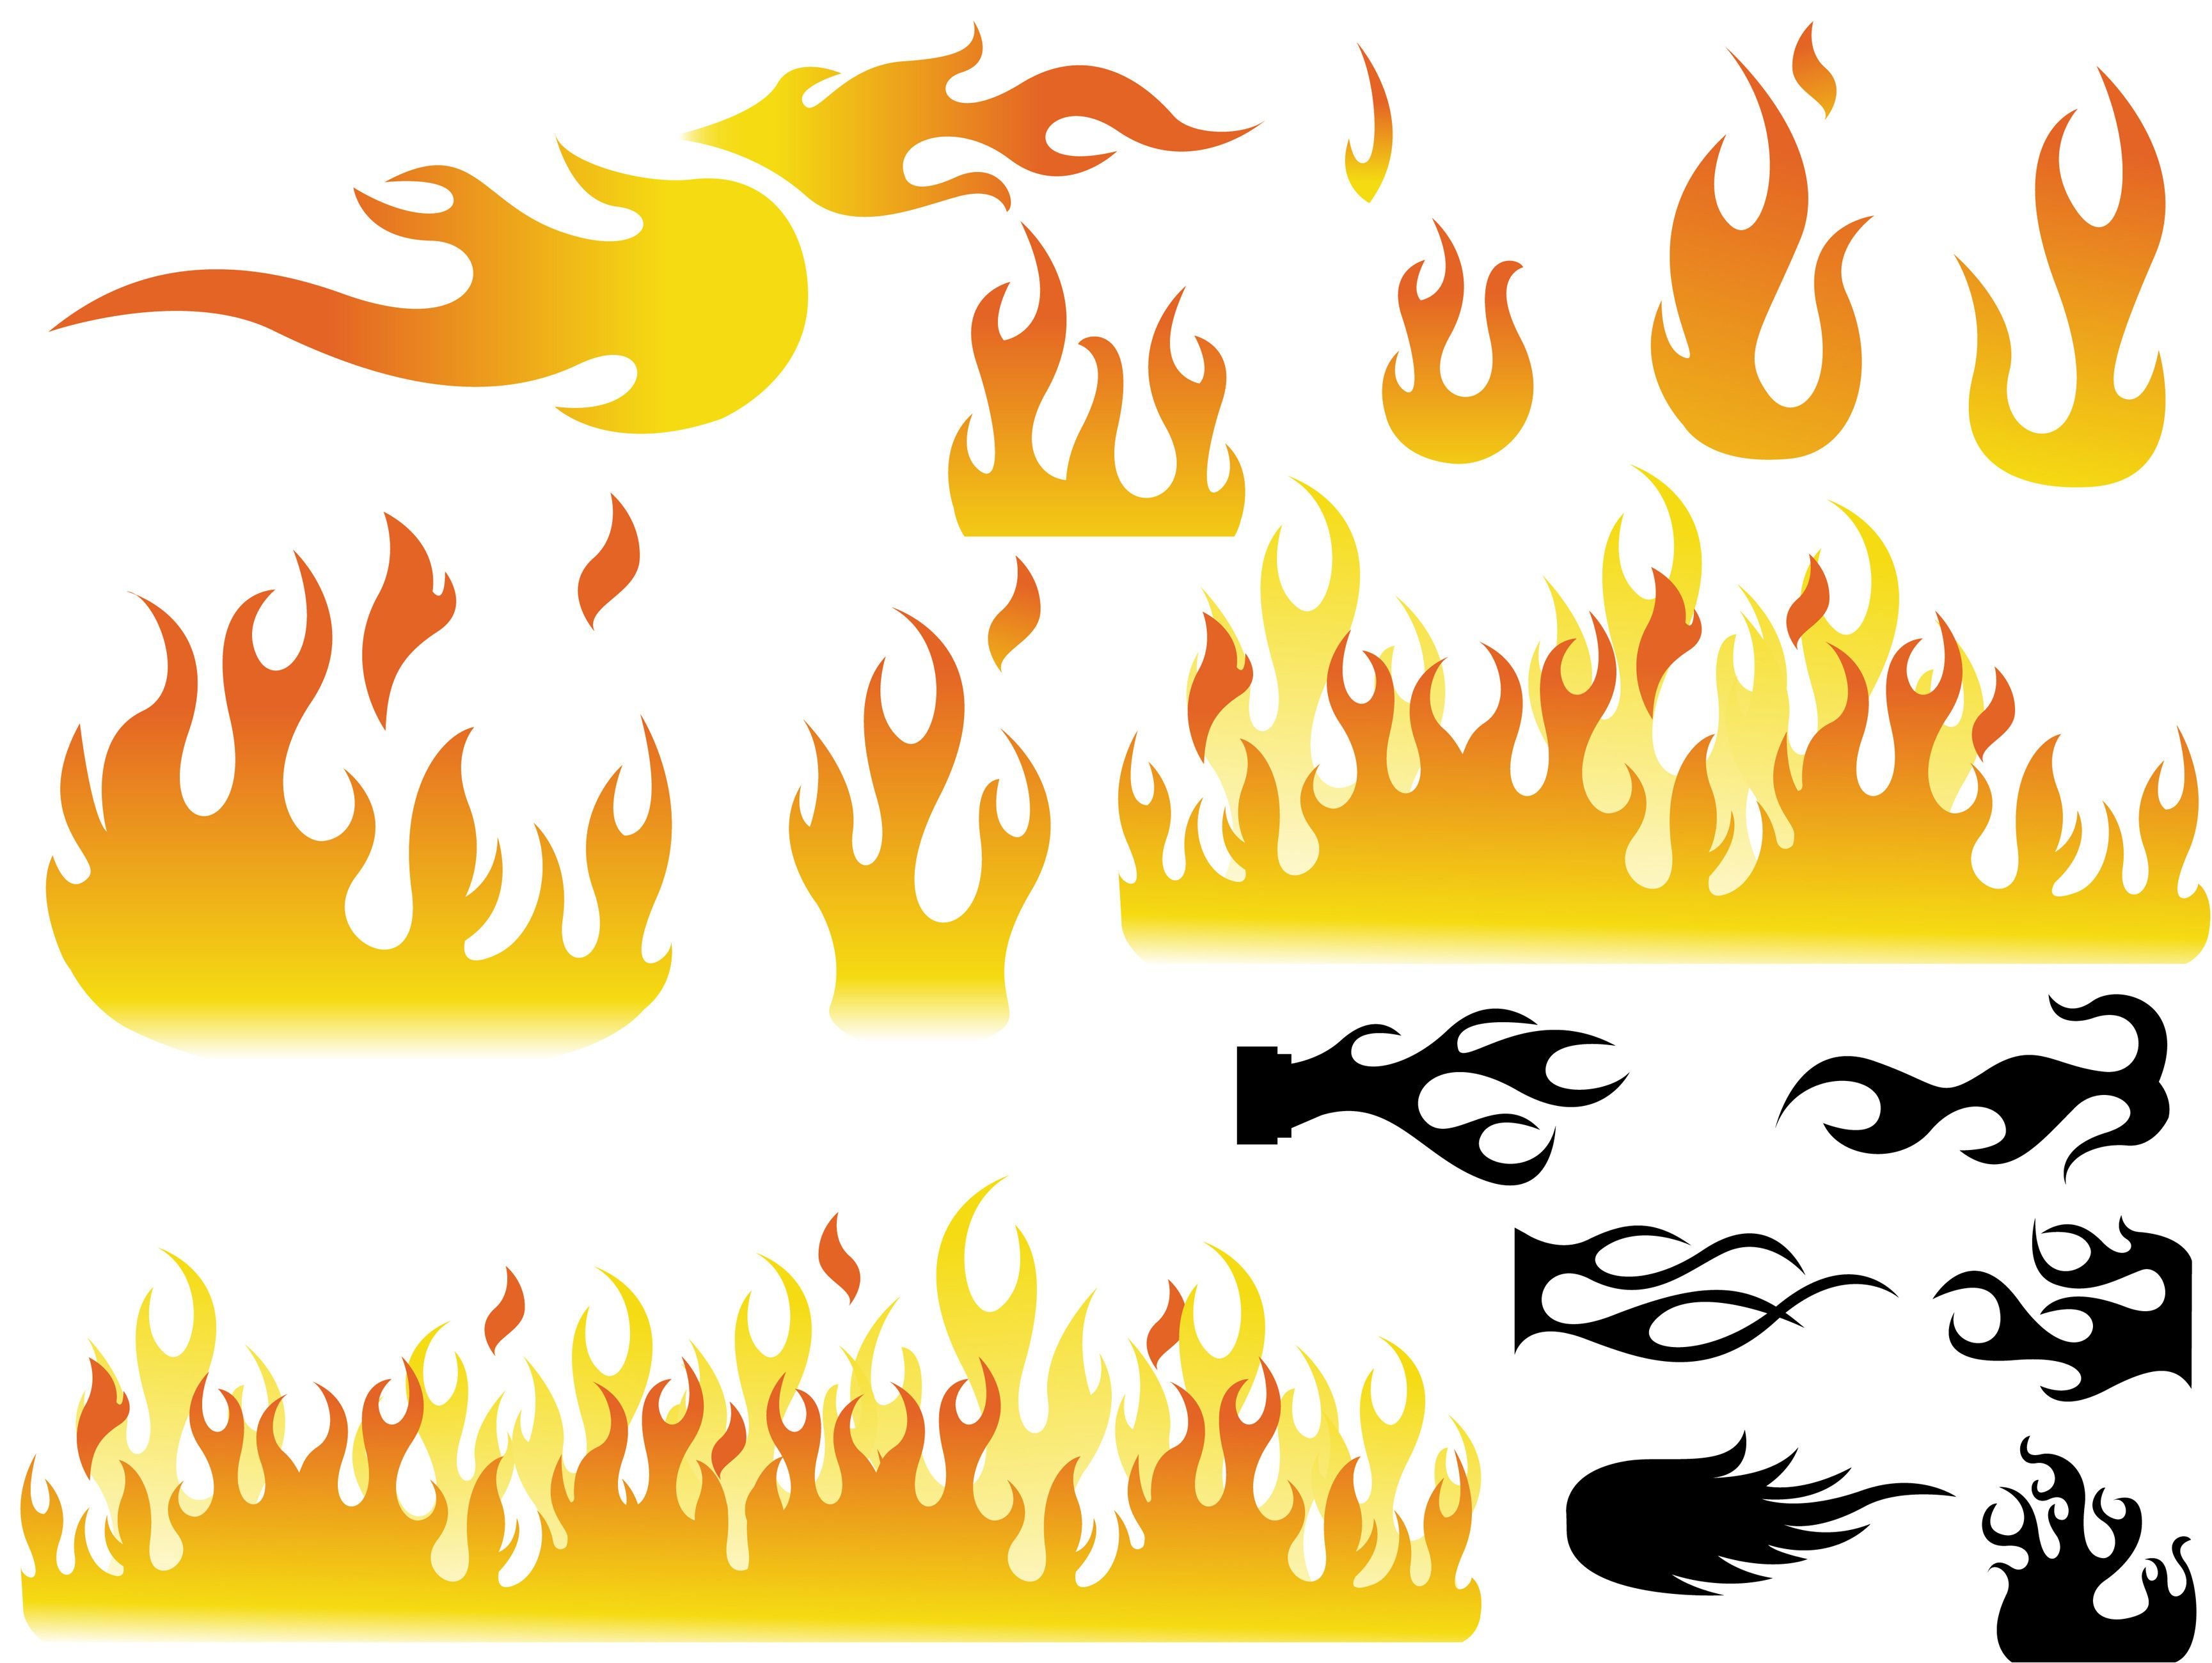 How To Draw Cartoon Fire Flames.